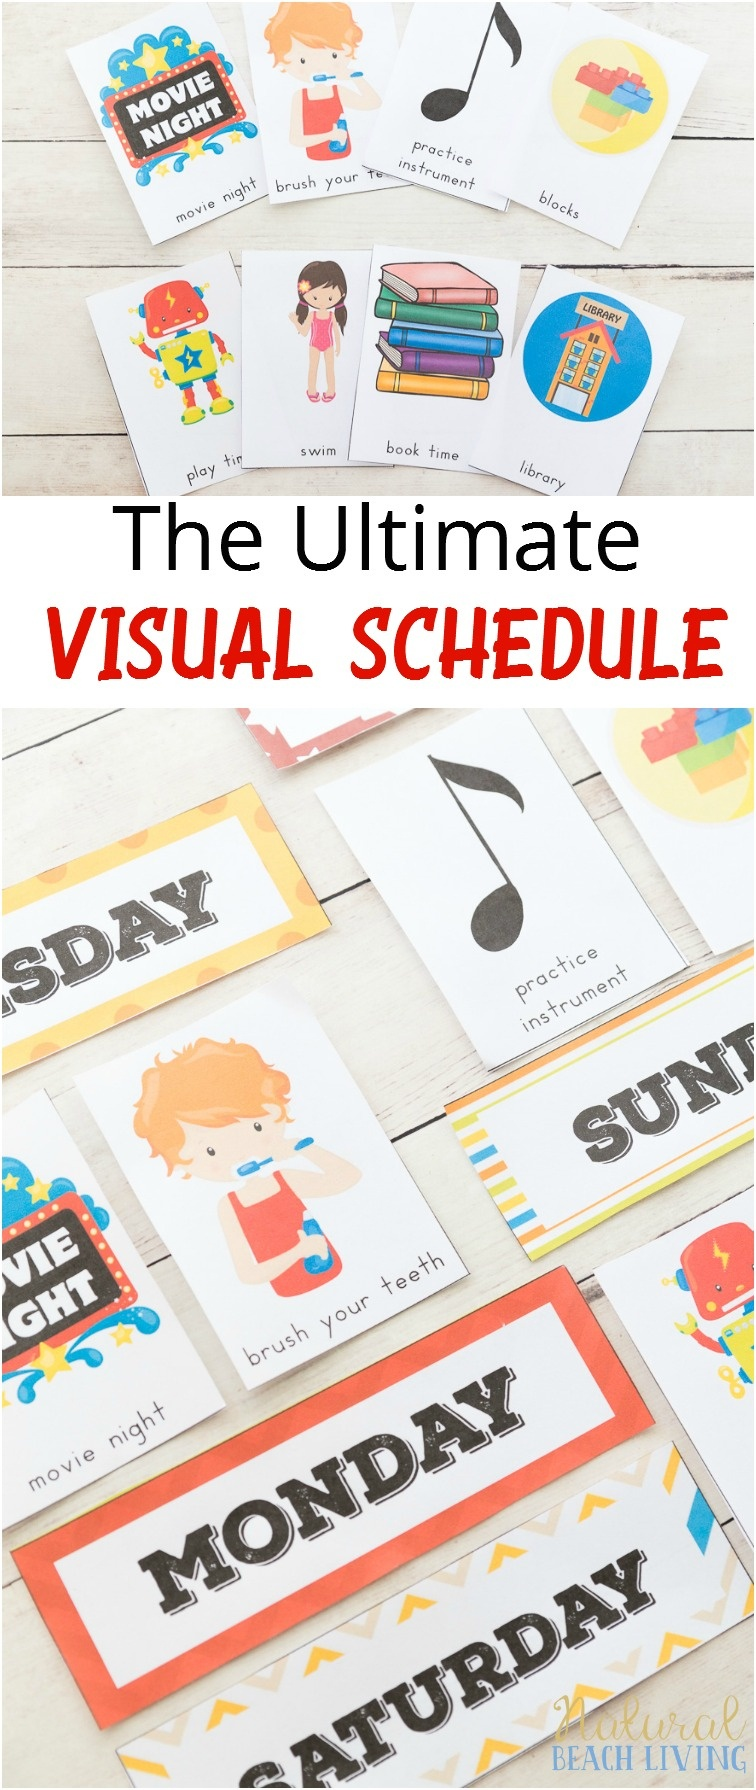 Extra Daily Visual Schedule Cards Free Printables - Natural Beach Living - Free Printable Schedule Cards